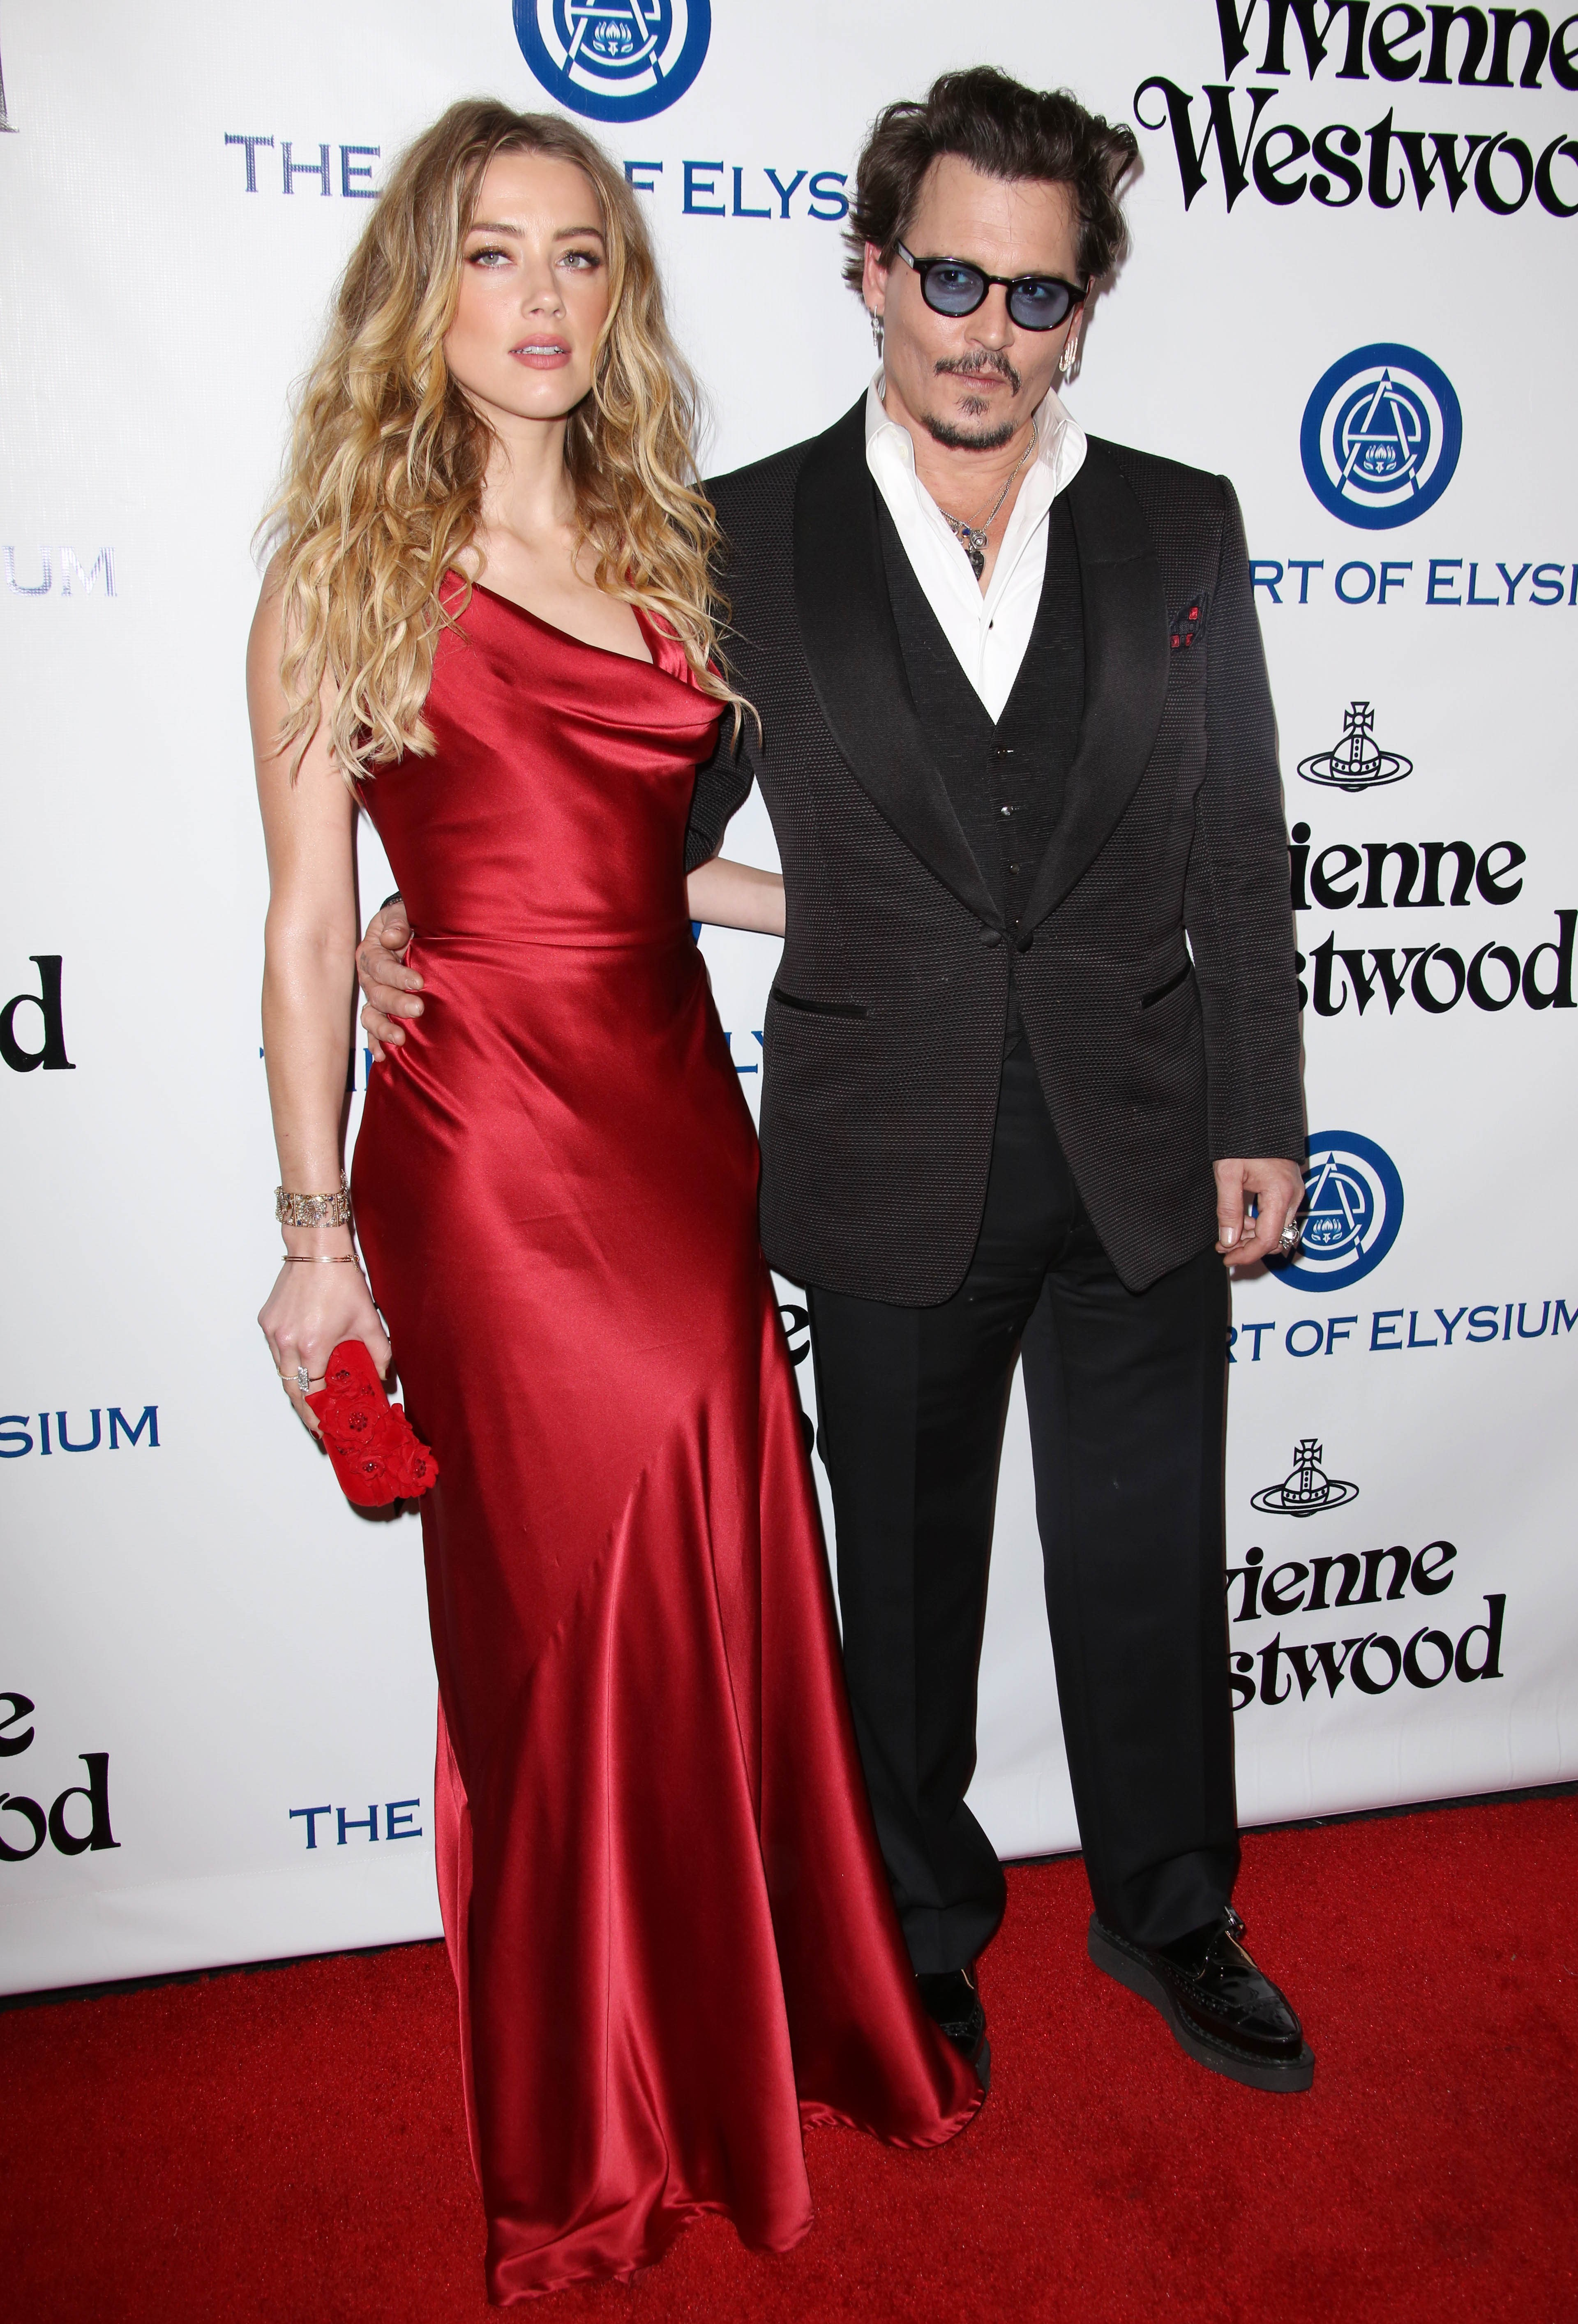 Amber Heard, friends prepared to testify about Johnny Depp's alleged abuse